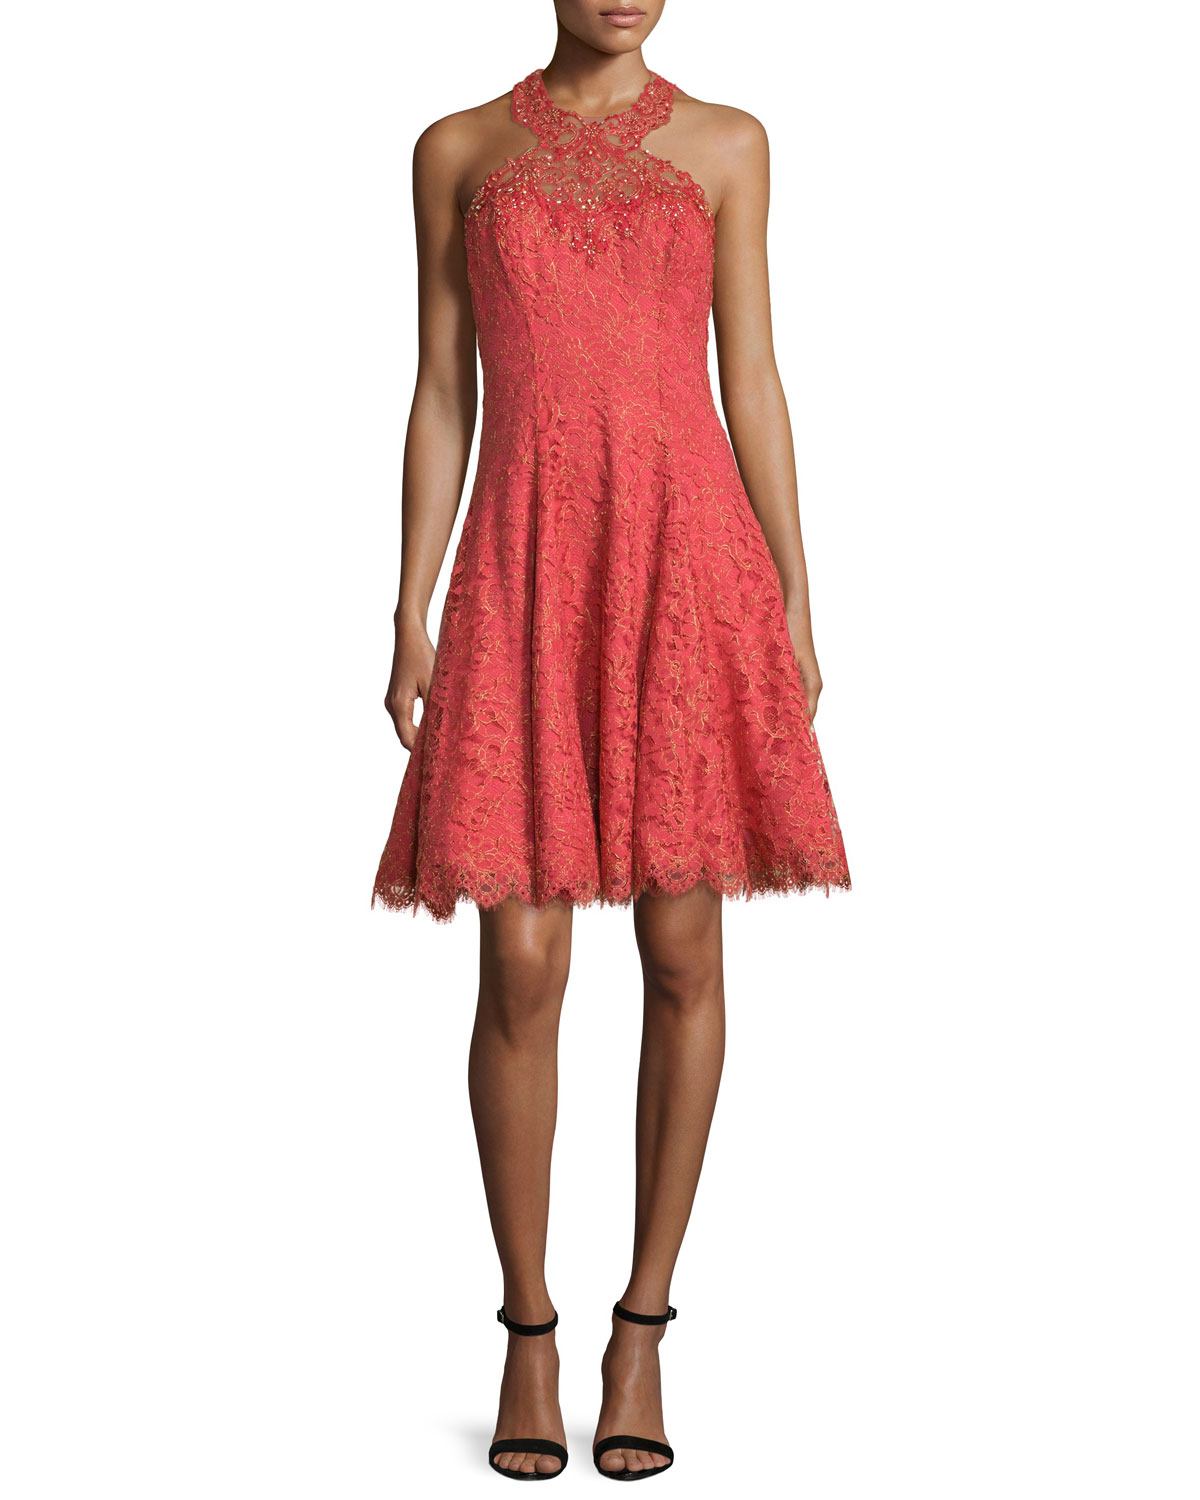 Notte by marchesa Metallic Lace Dress in Orange